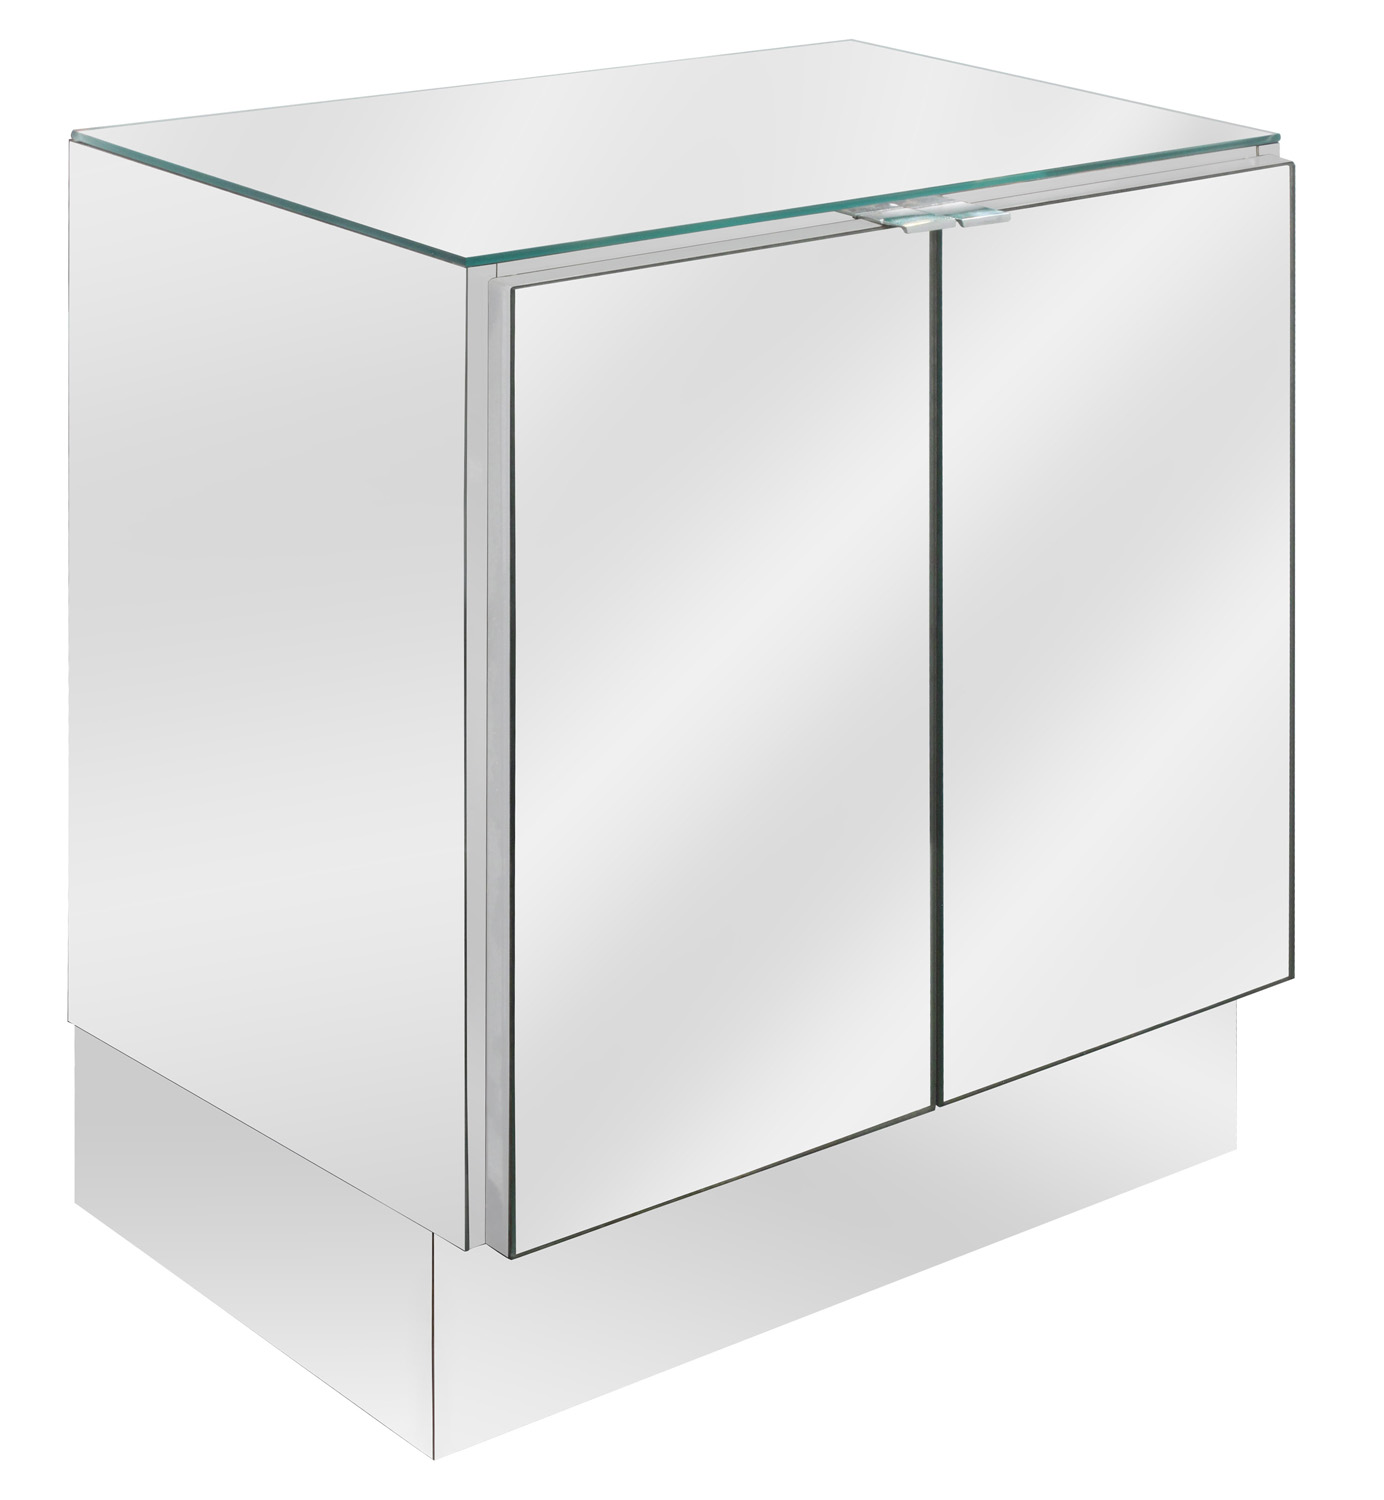 Ello 35 2 dr mirrored cabinet43 hires.jpg